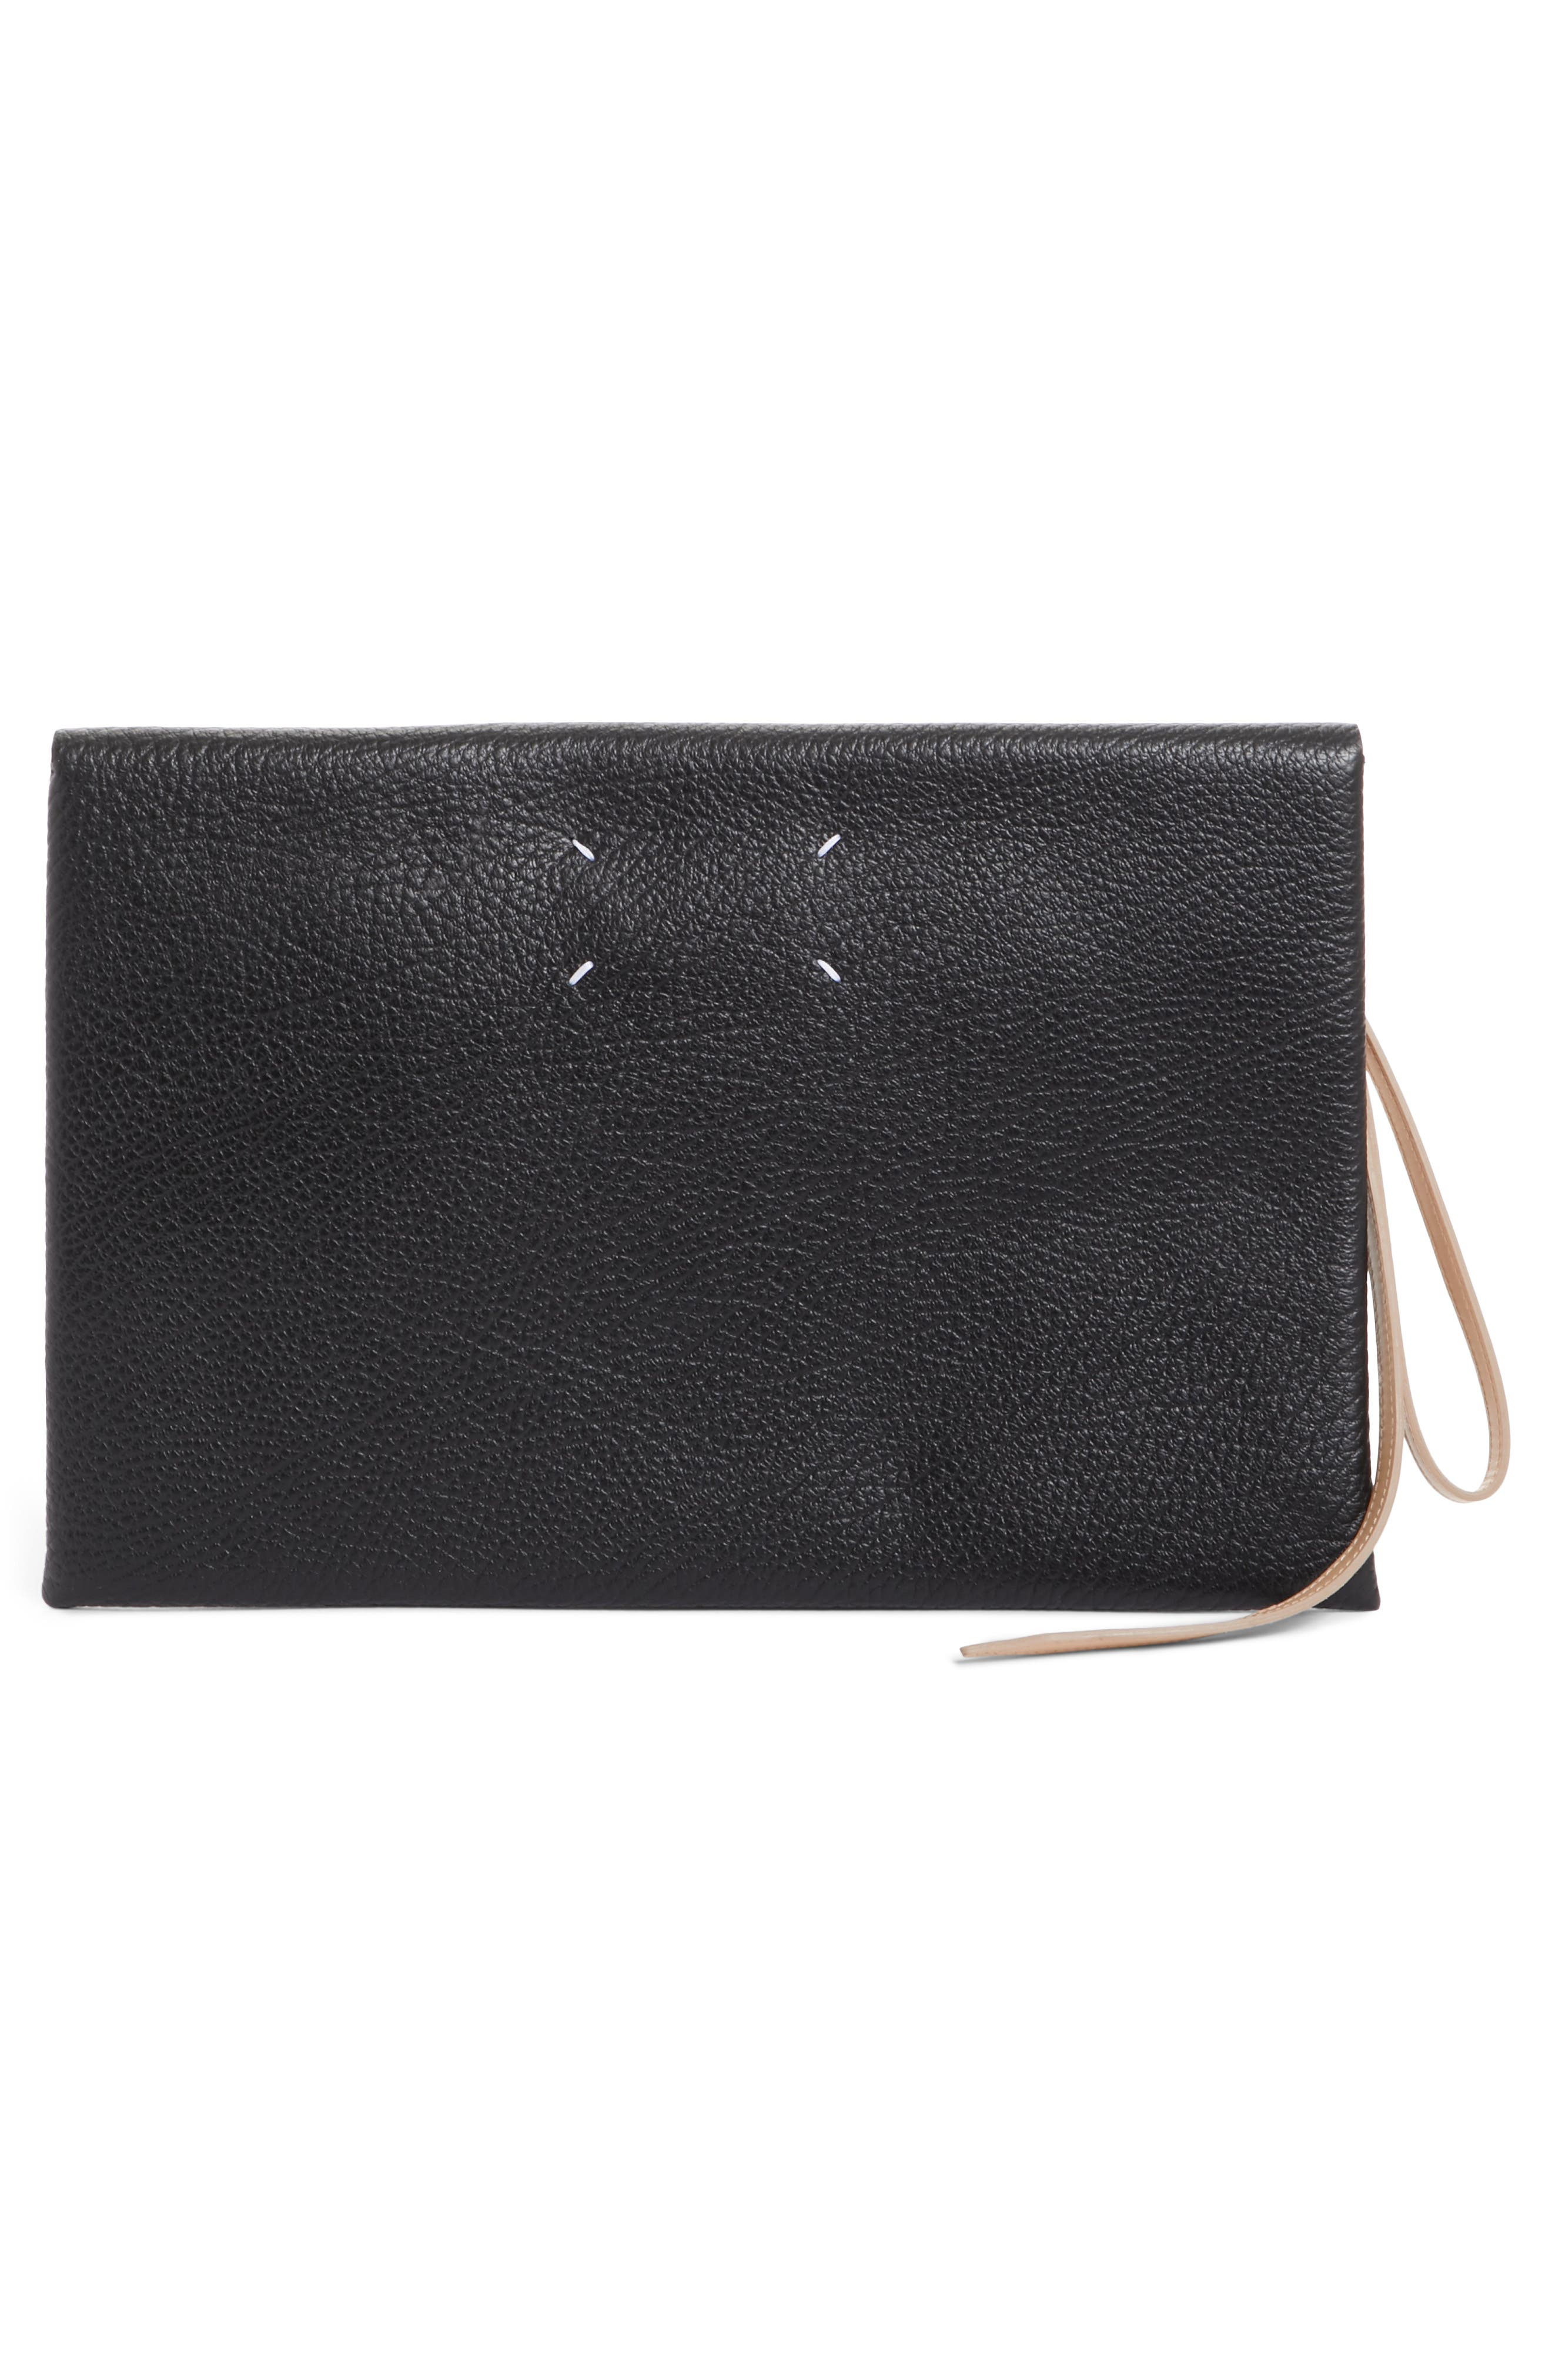 Three-in-One Stacked Leather Pouches,                             Alternate thumbnail 3, color,                             Black Nude Black